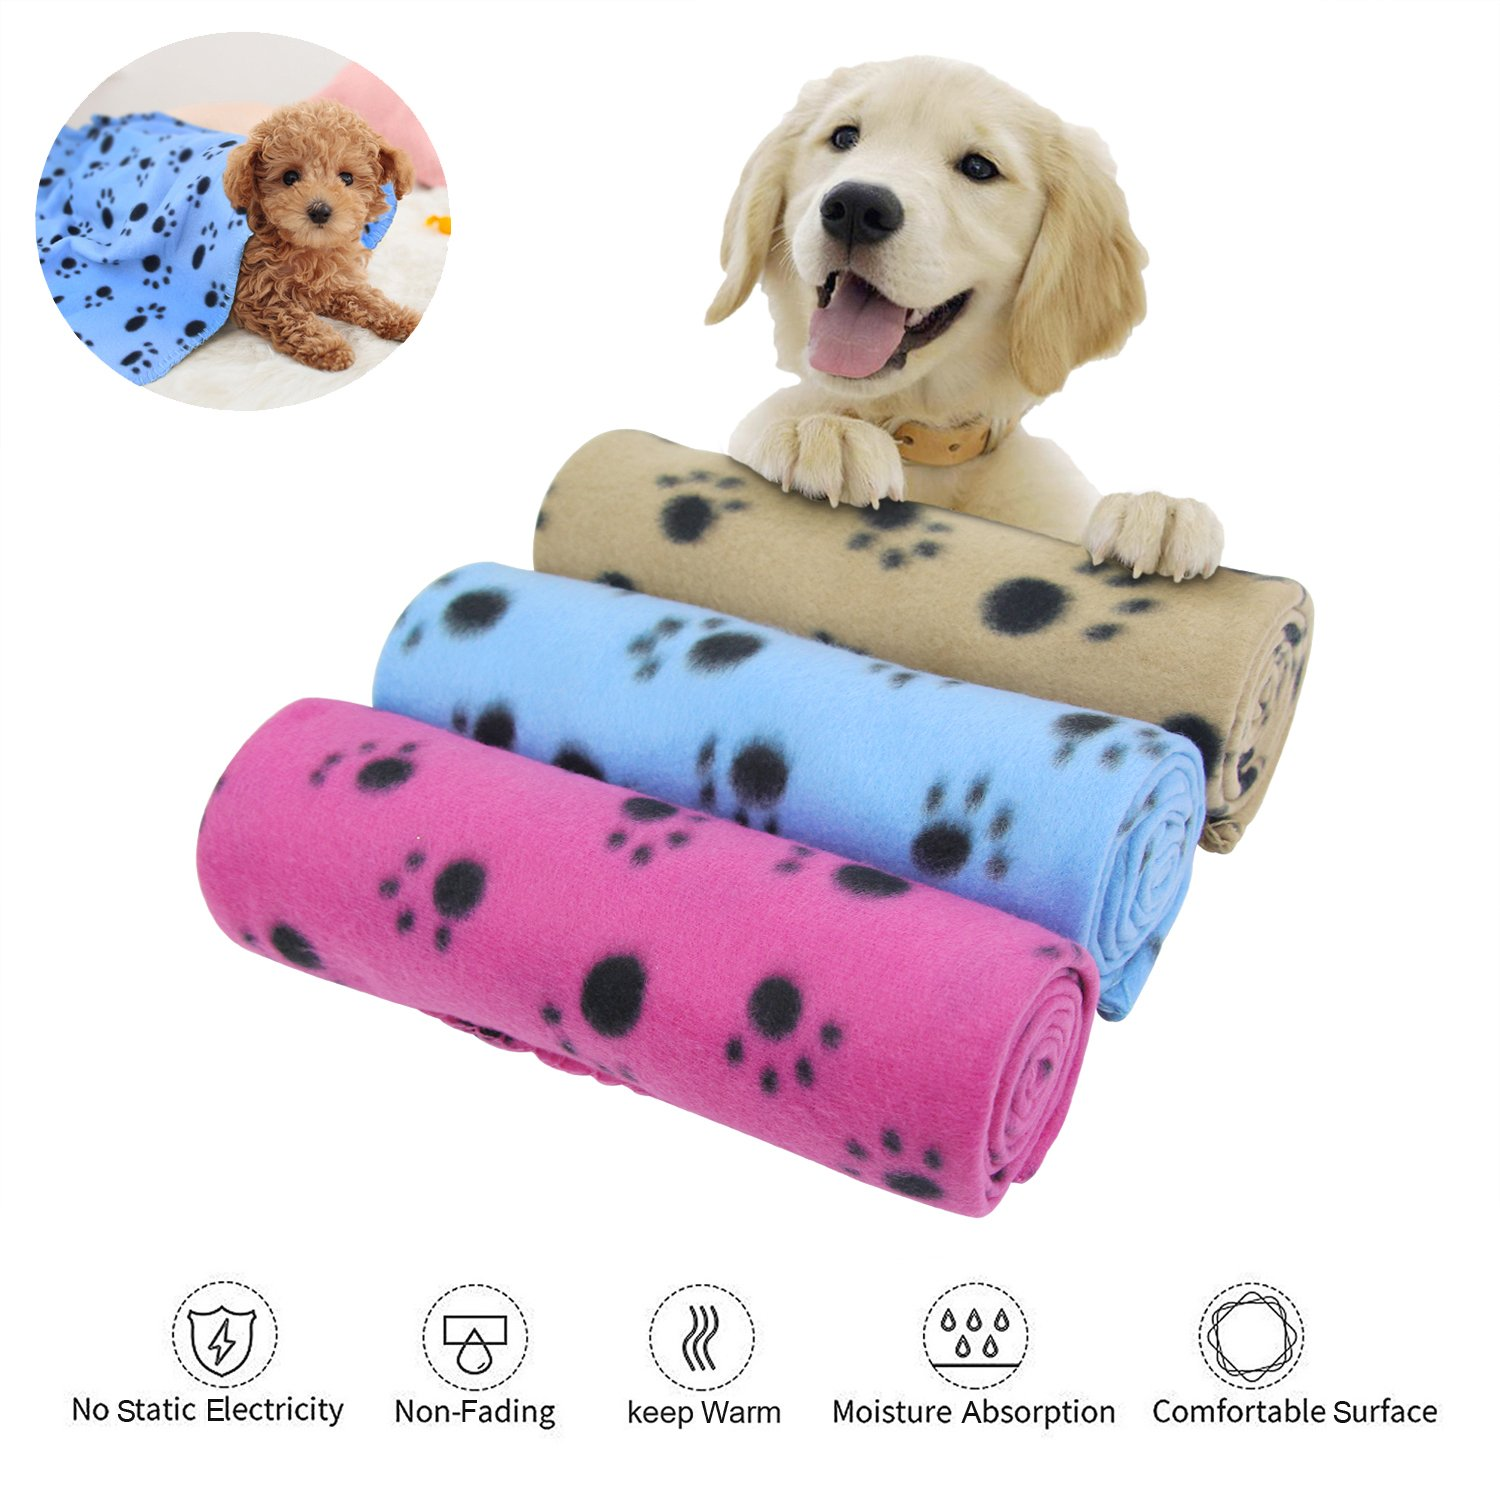 KYC 3 pack 40 x 28 '' Puppy Blanket Cushion Dog Cat Fleece Blankets Pet Sleep Mat Pad Bed Cover with Paw Print Kitten Soft Warm Blanket for Animals (Mixed A)